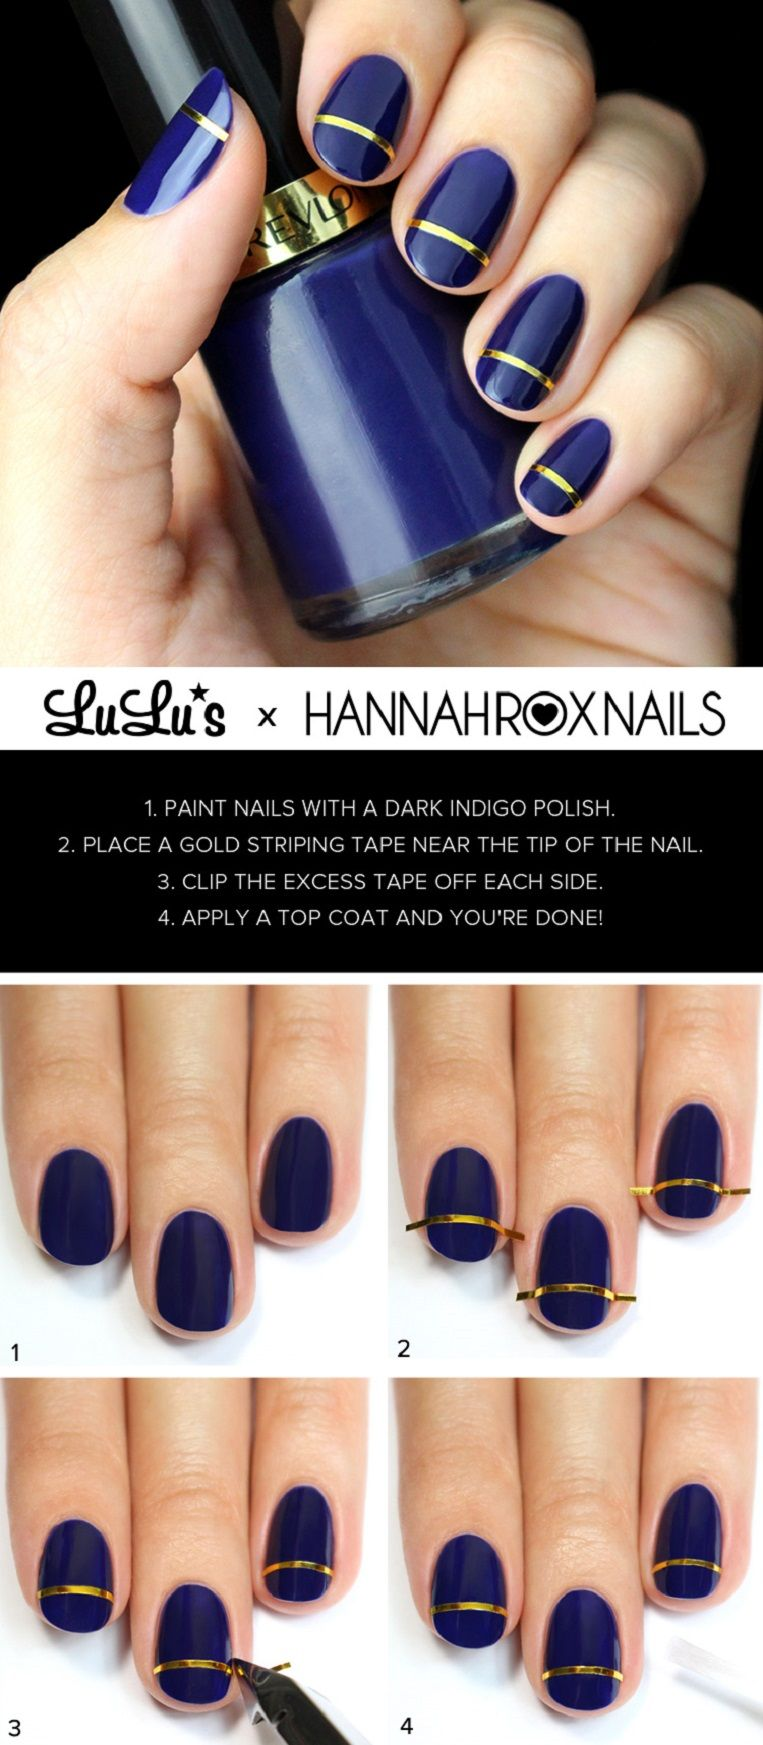 12 Chic Nail Art Designs for Fall 2014 - GleamItUp | Things to Wear ...